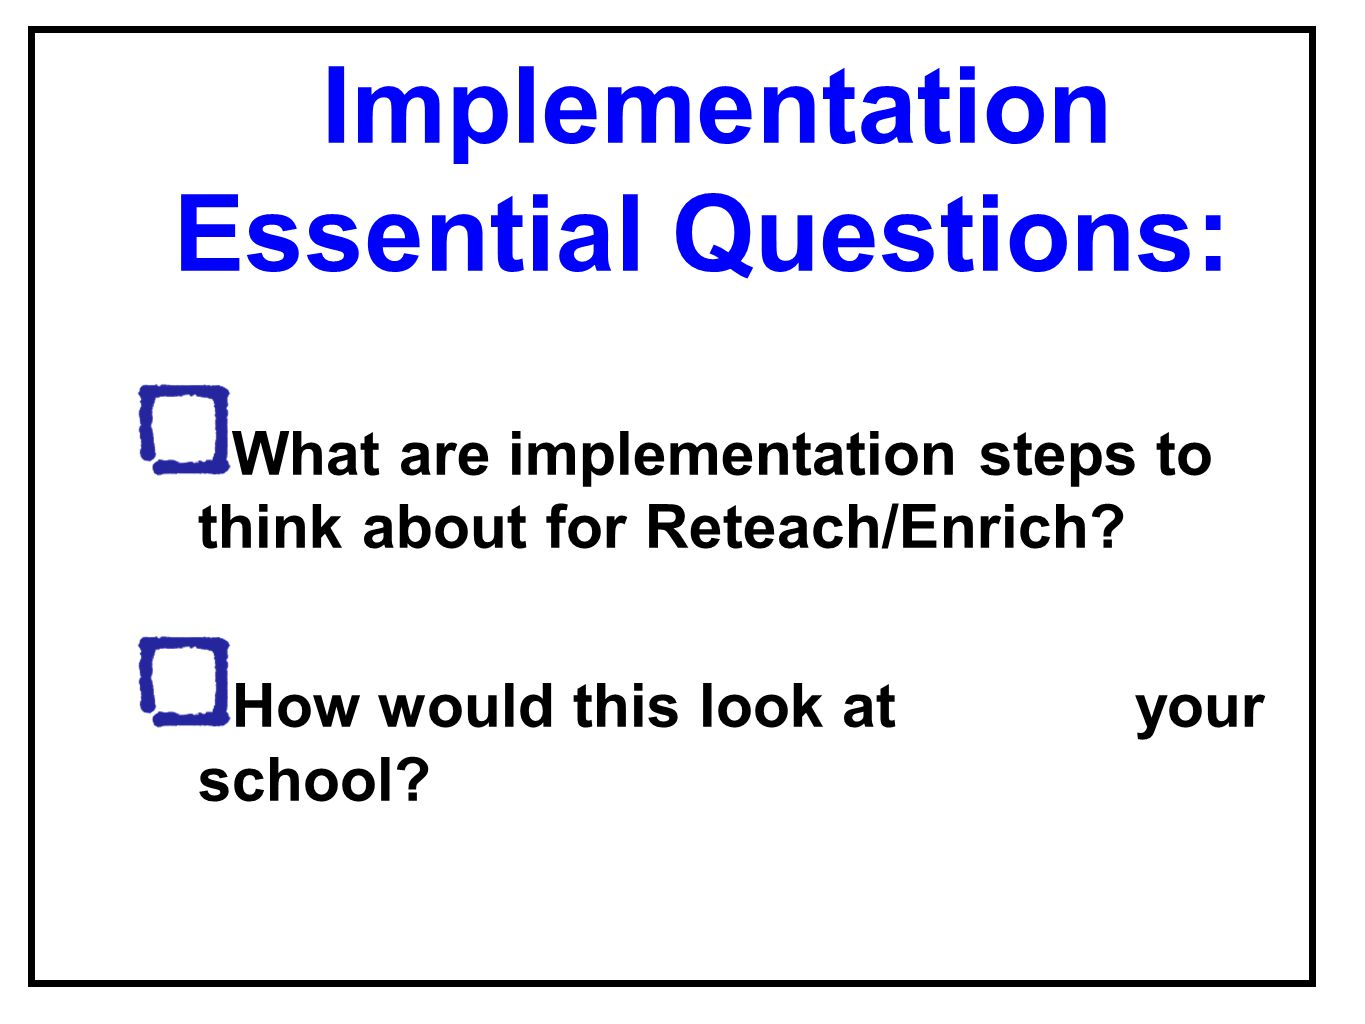 Implementation Essential Questions: What are implementation steps to think about for Reteach/Enrich? How would this look at your school?